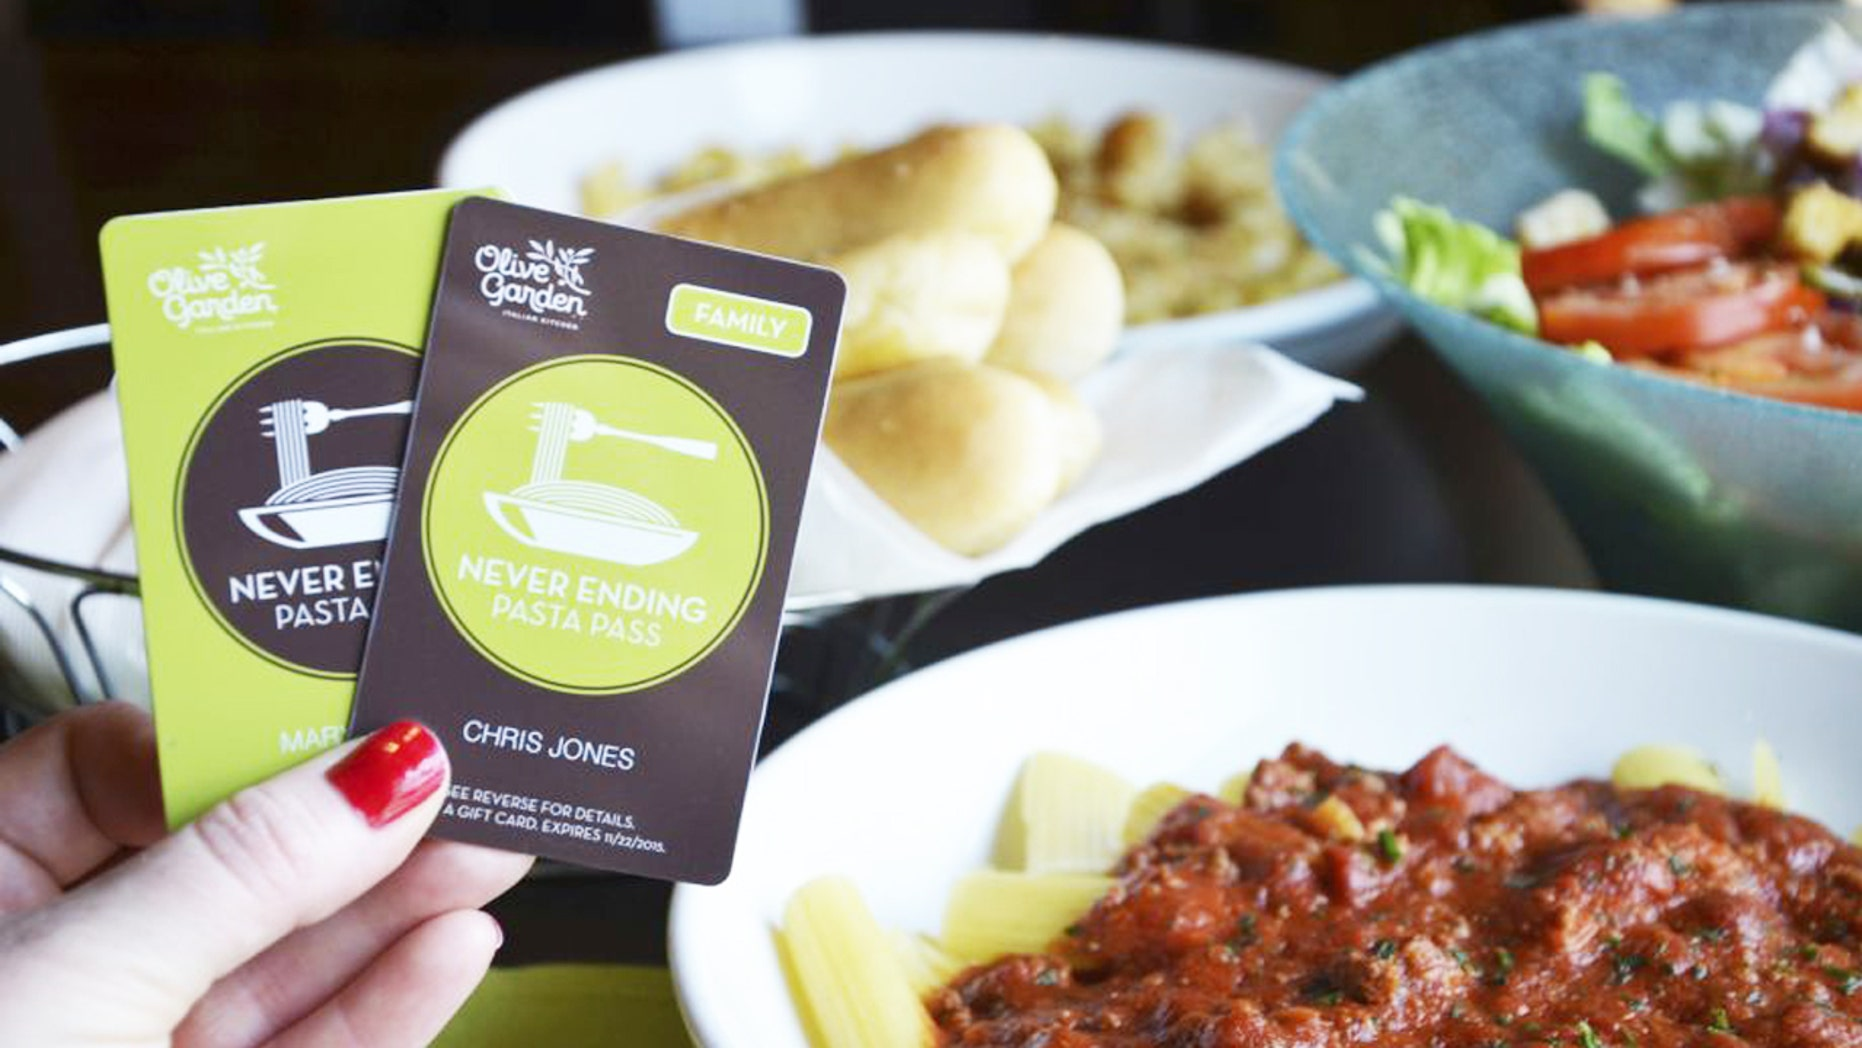 Never Ending Pasta Passes will be available in two options this year.